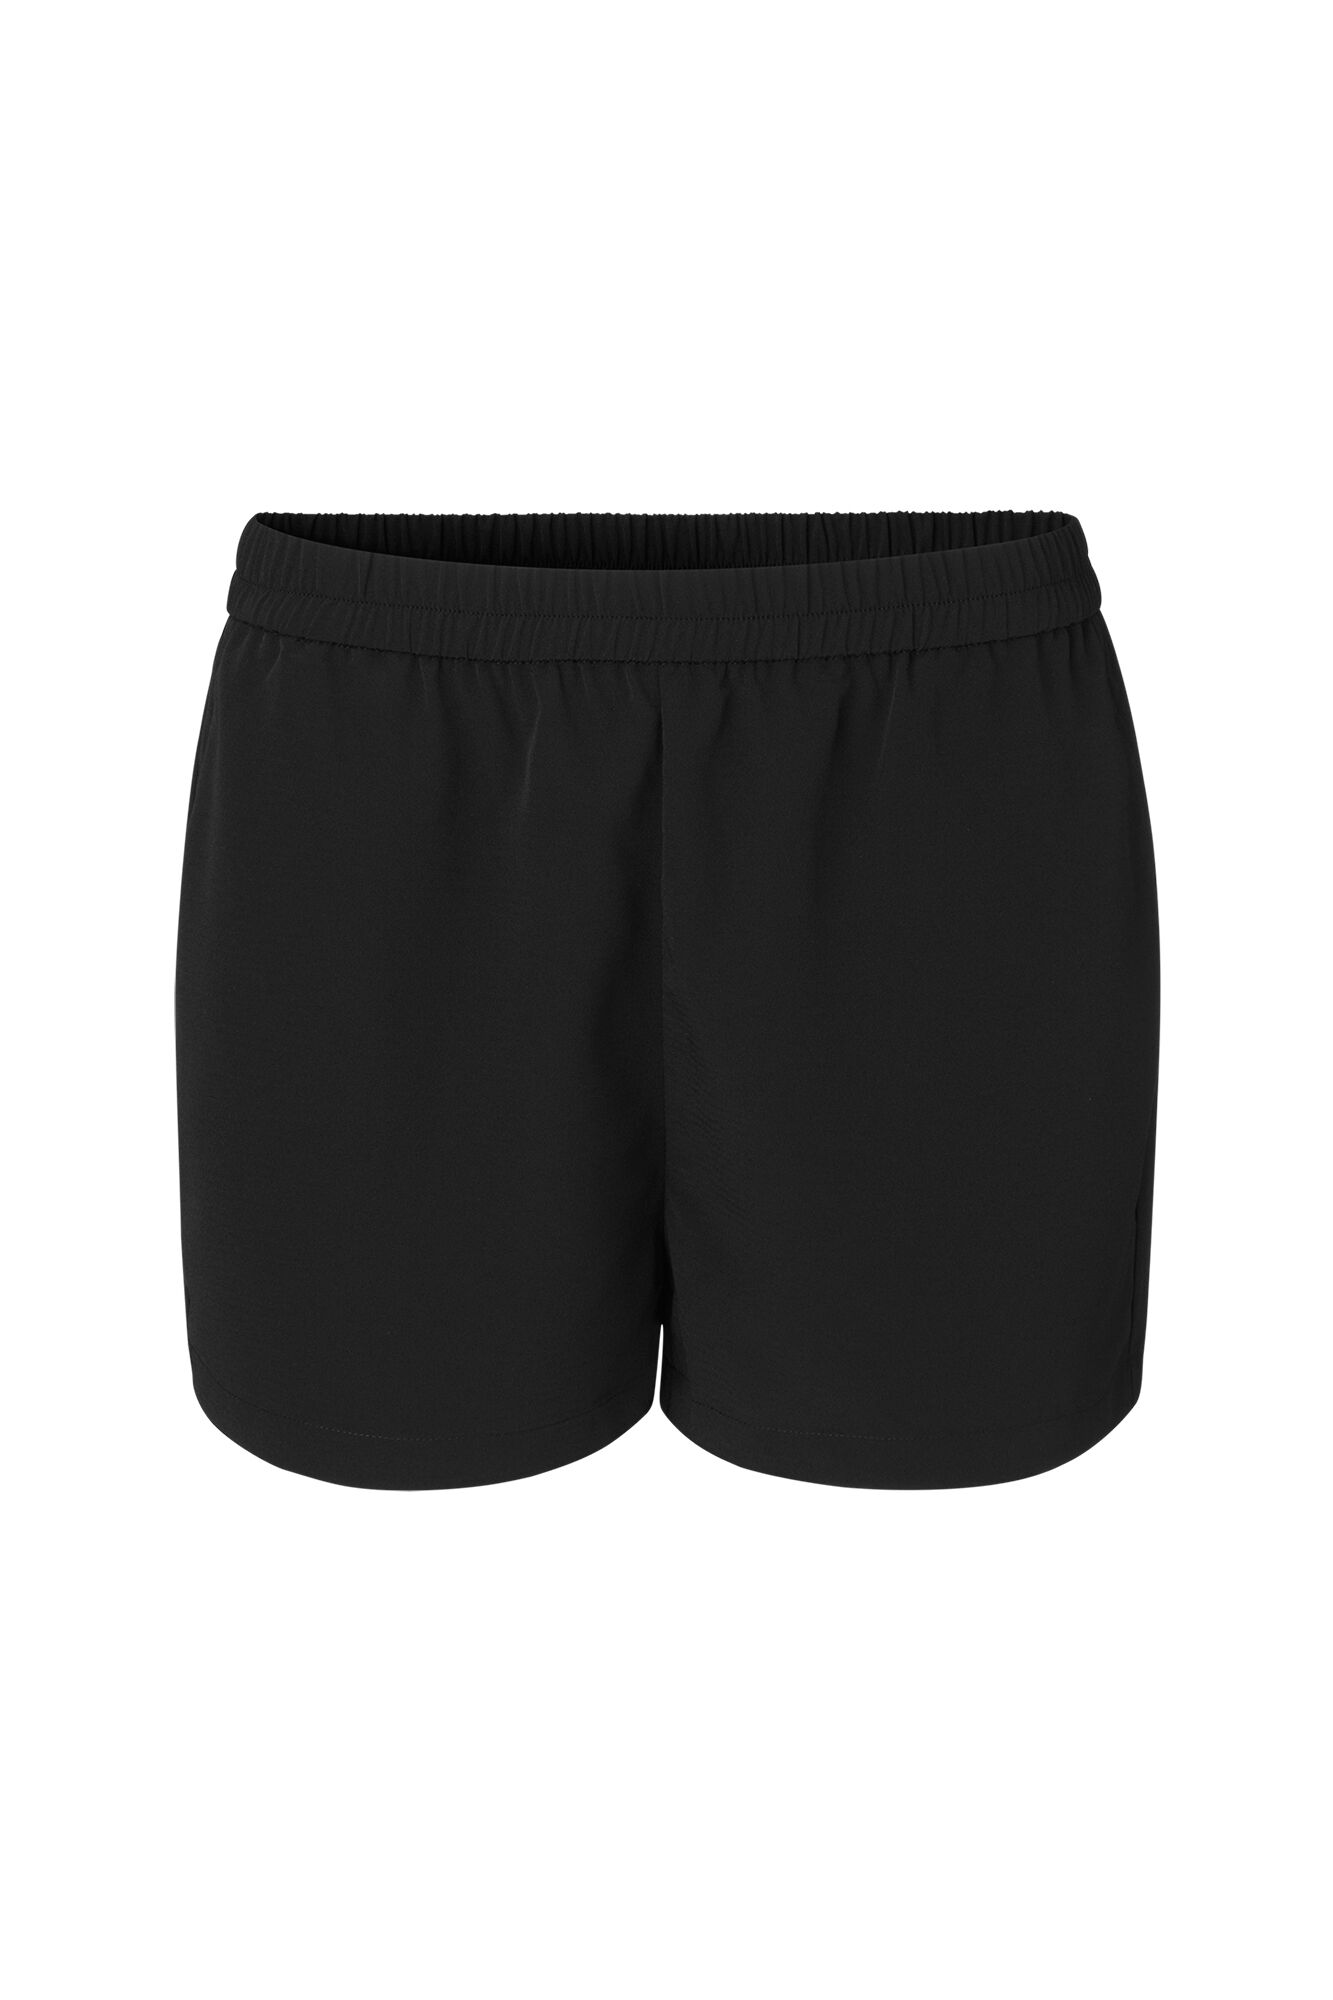 ENMIAMI SHORTS 6460, BLACK